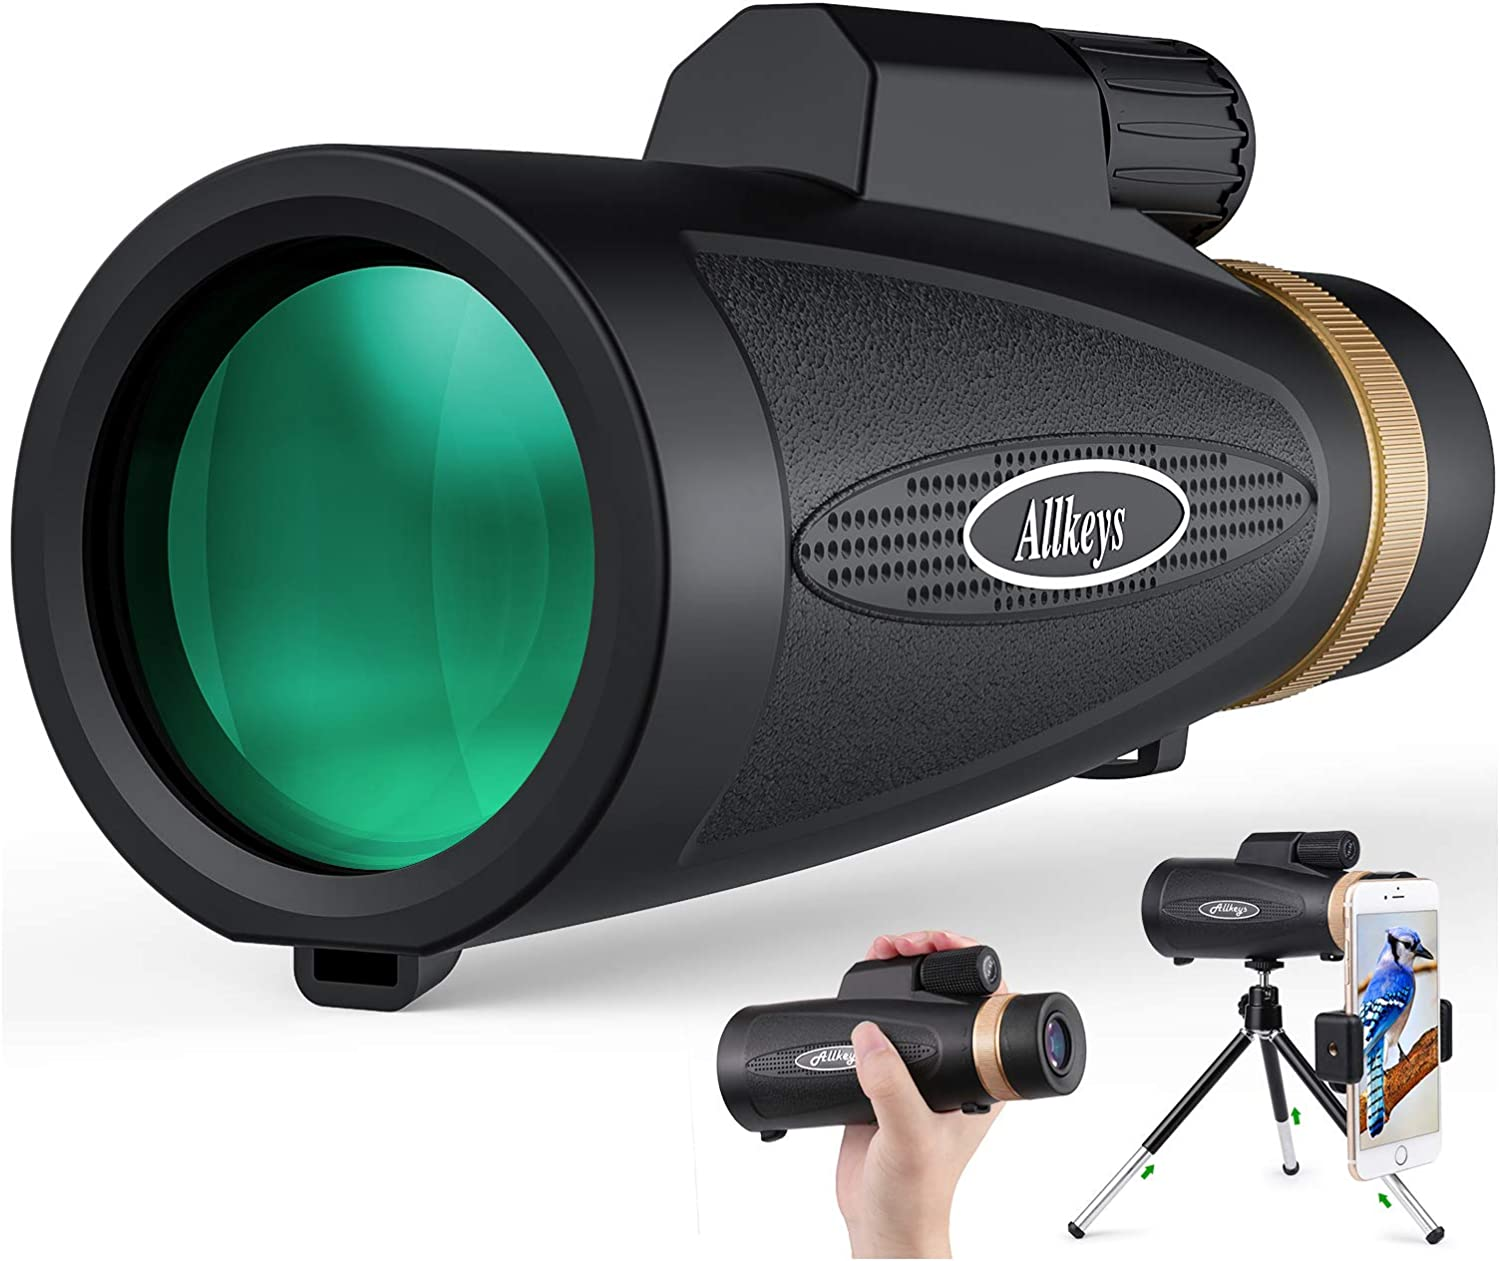 Allkeys 16x55 High Definition Monocular Beauty products and Smar Quick Telescope Limited time sale